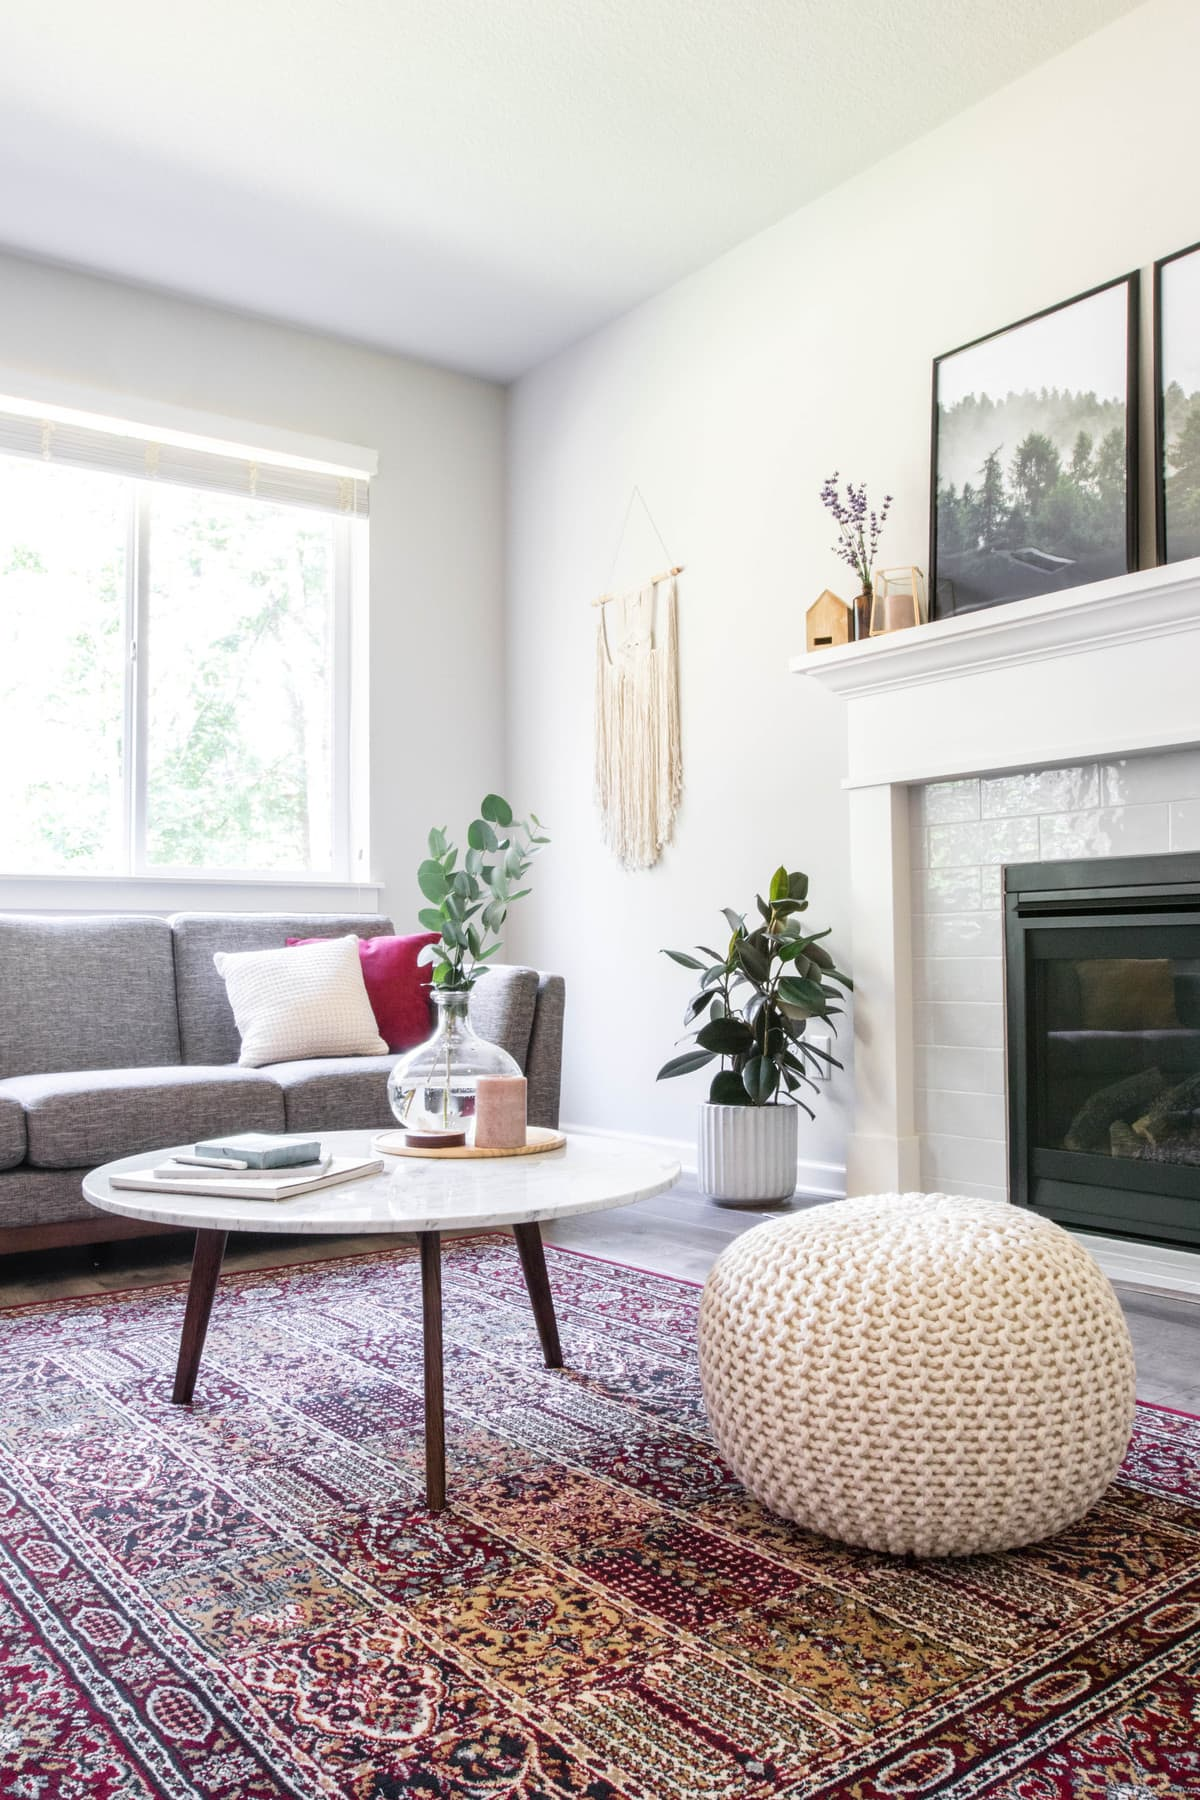 white pouf, coffee table, and couch by window